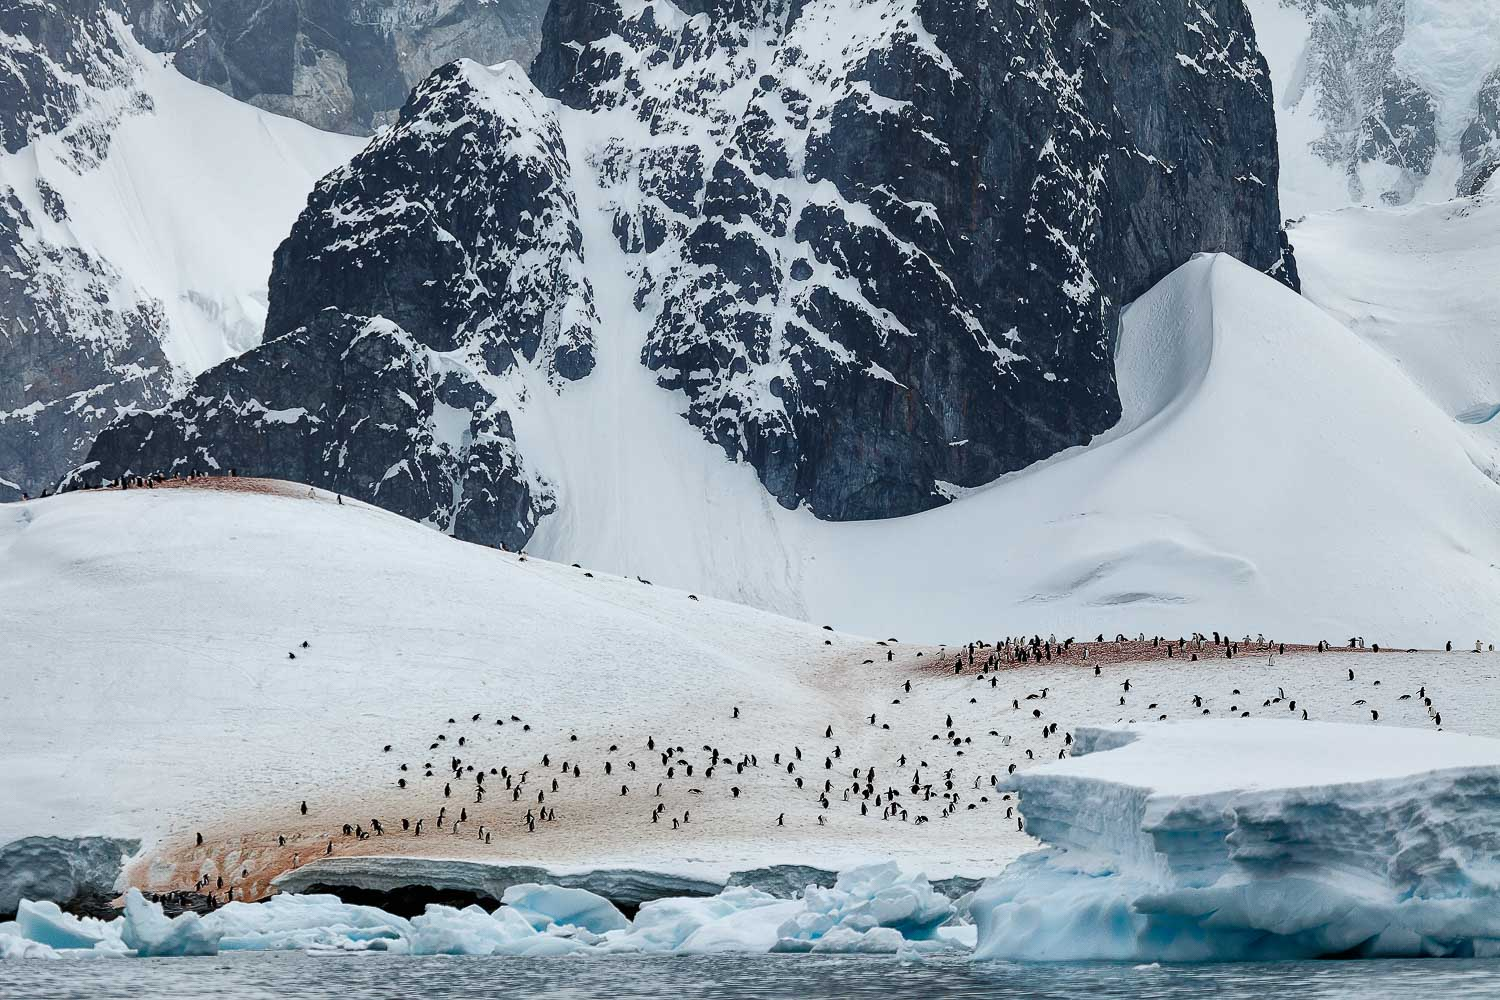 A waddle of penguins is dwarfed by the surrounding landscape on the shores of Cuverville Island off the Antarctic Peninsula.